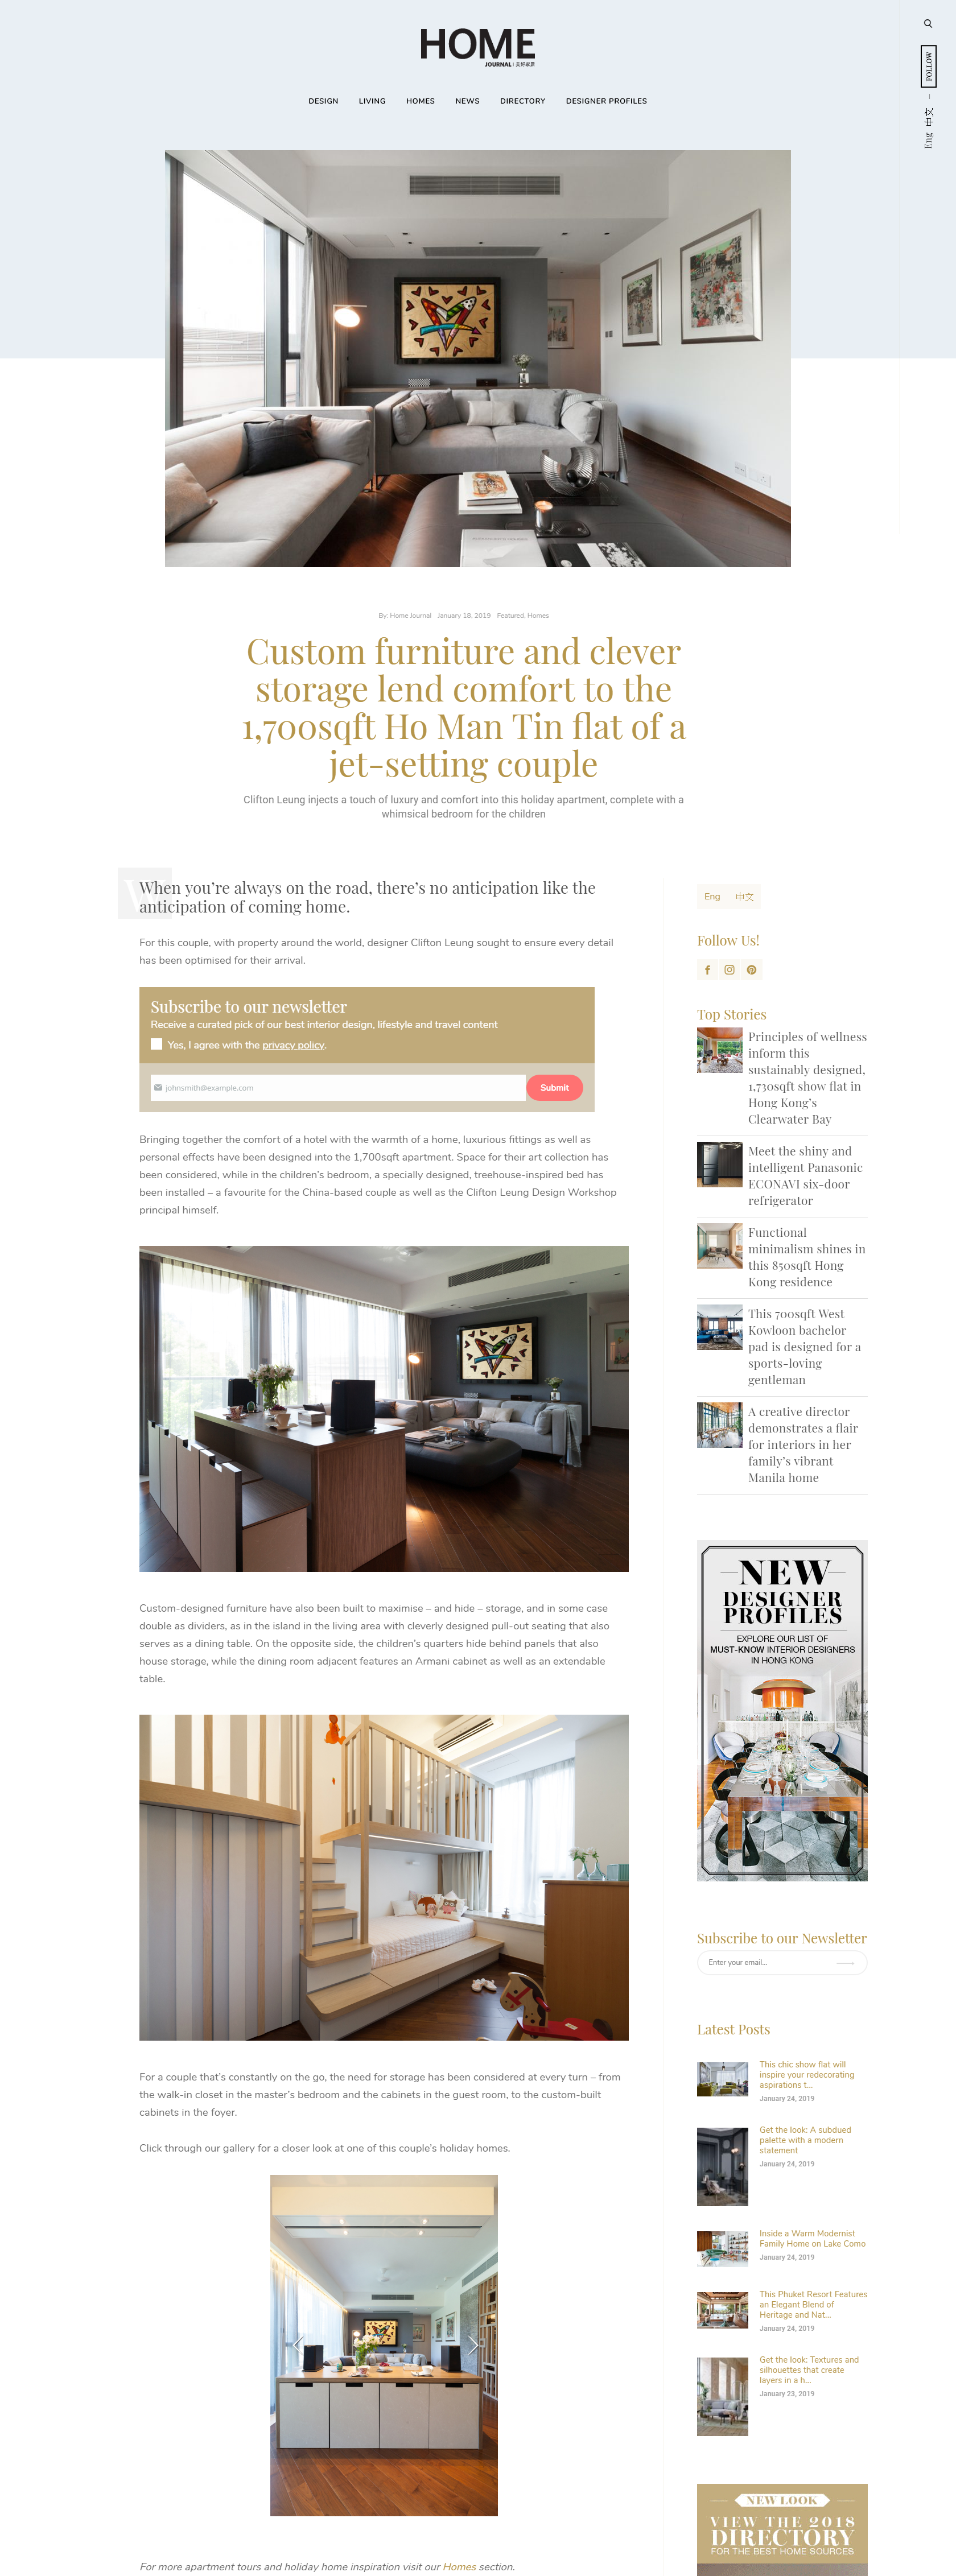 Modern Luxury Home | Home Journal | Jan 2019